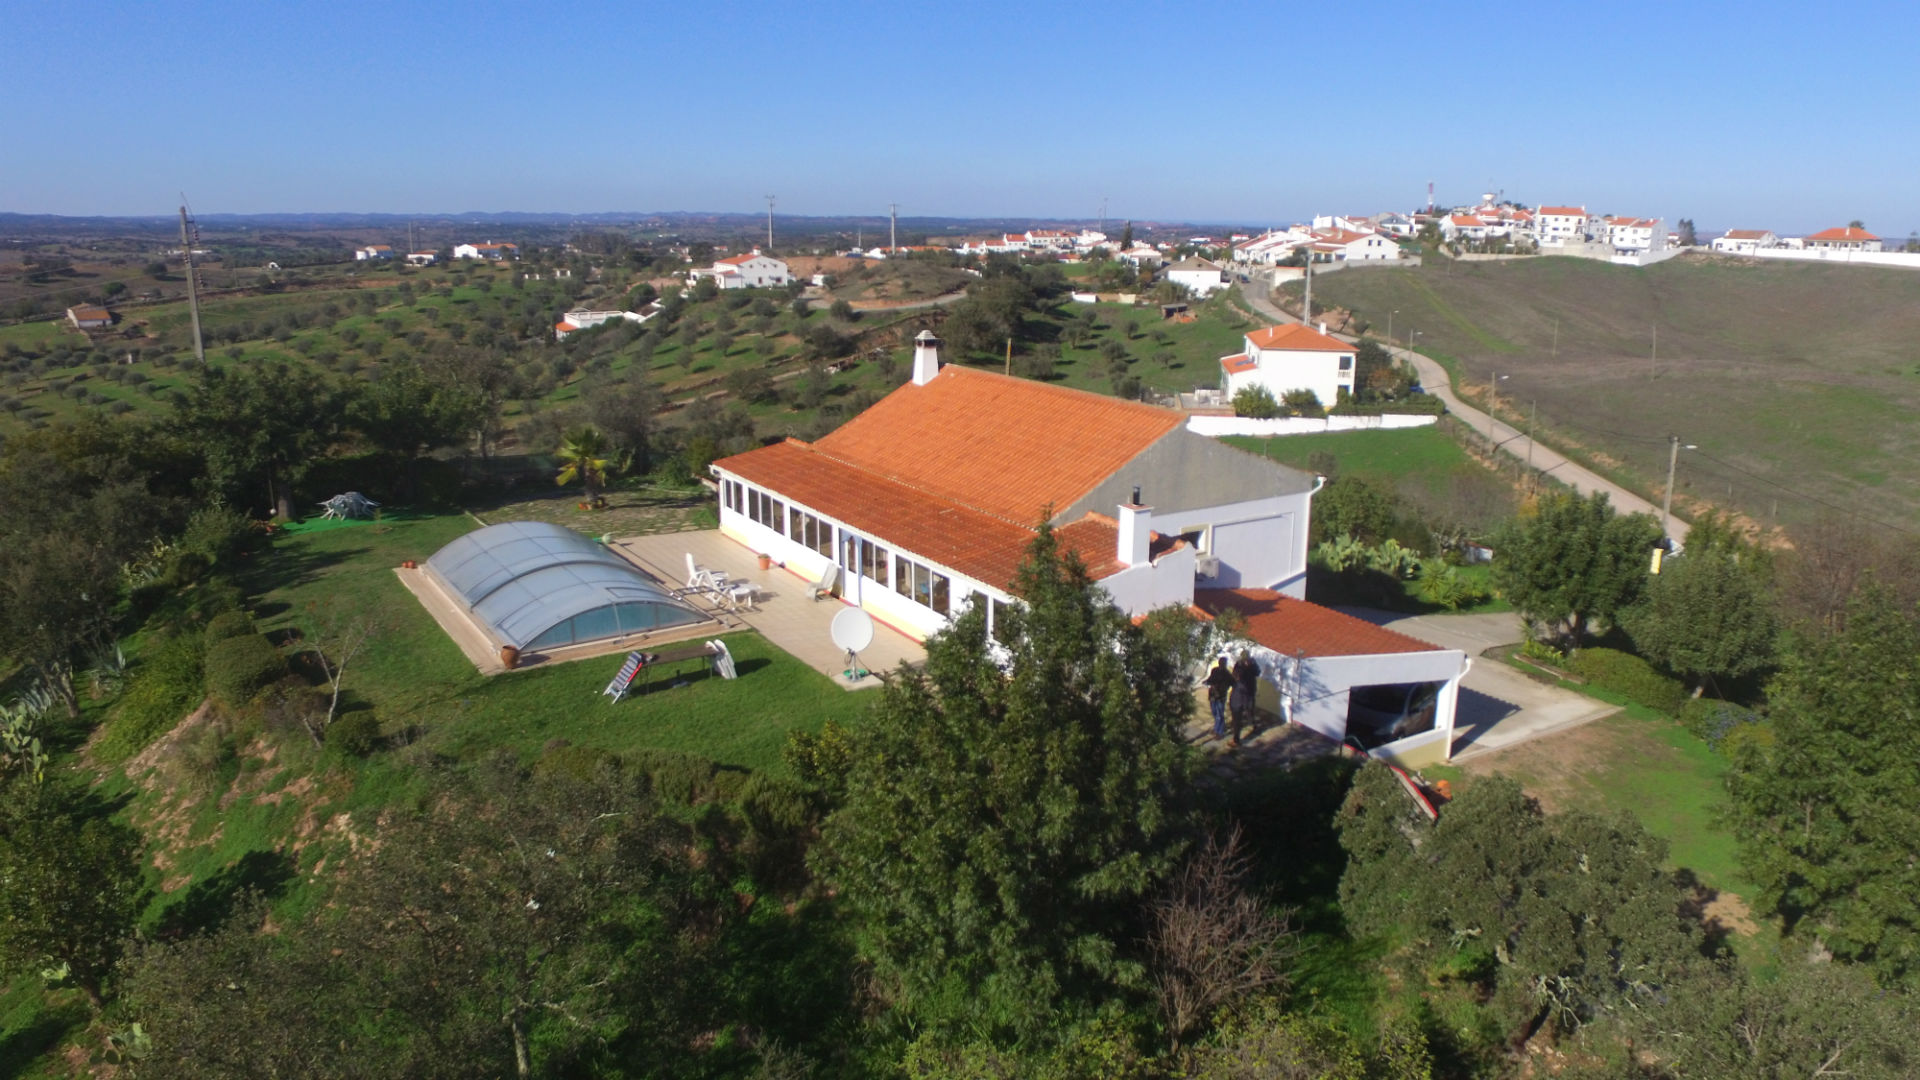 A 4-bedroom villa with pool in the outskirts of Ourique, Alentejo, with lovely country views.